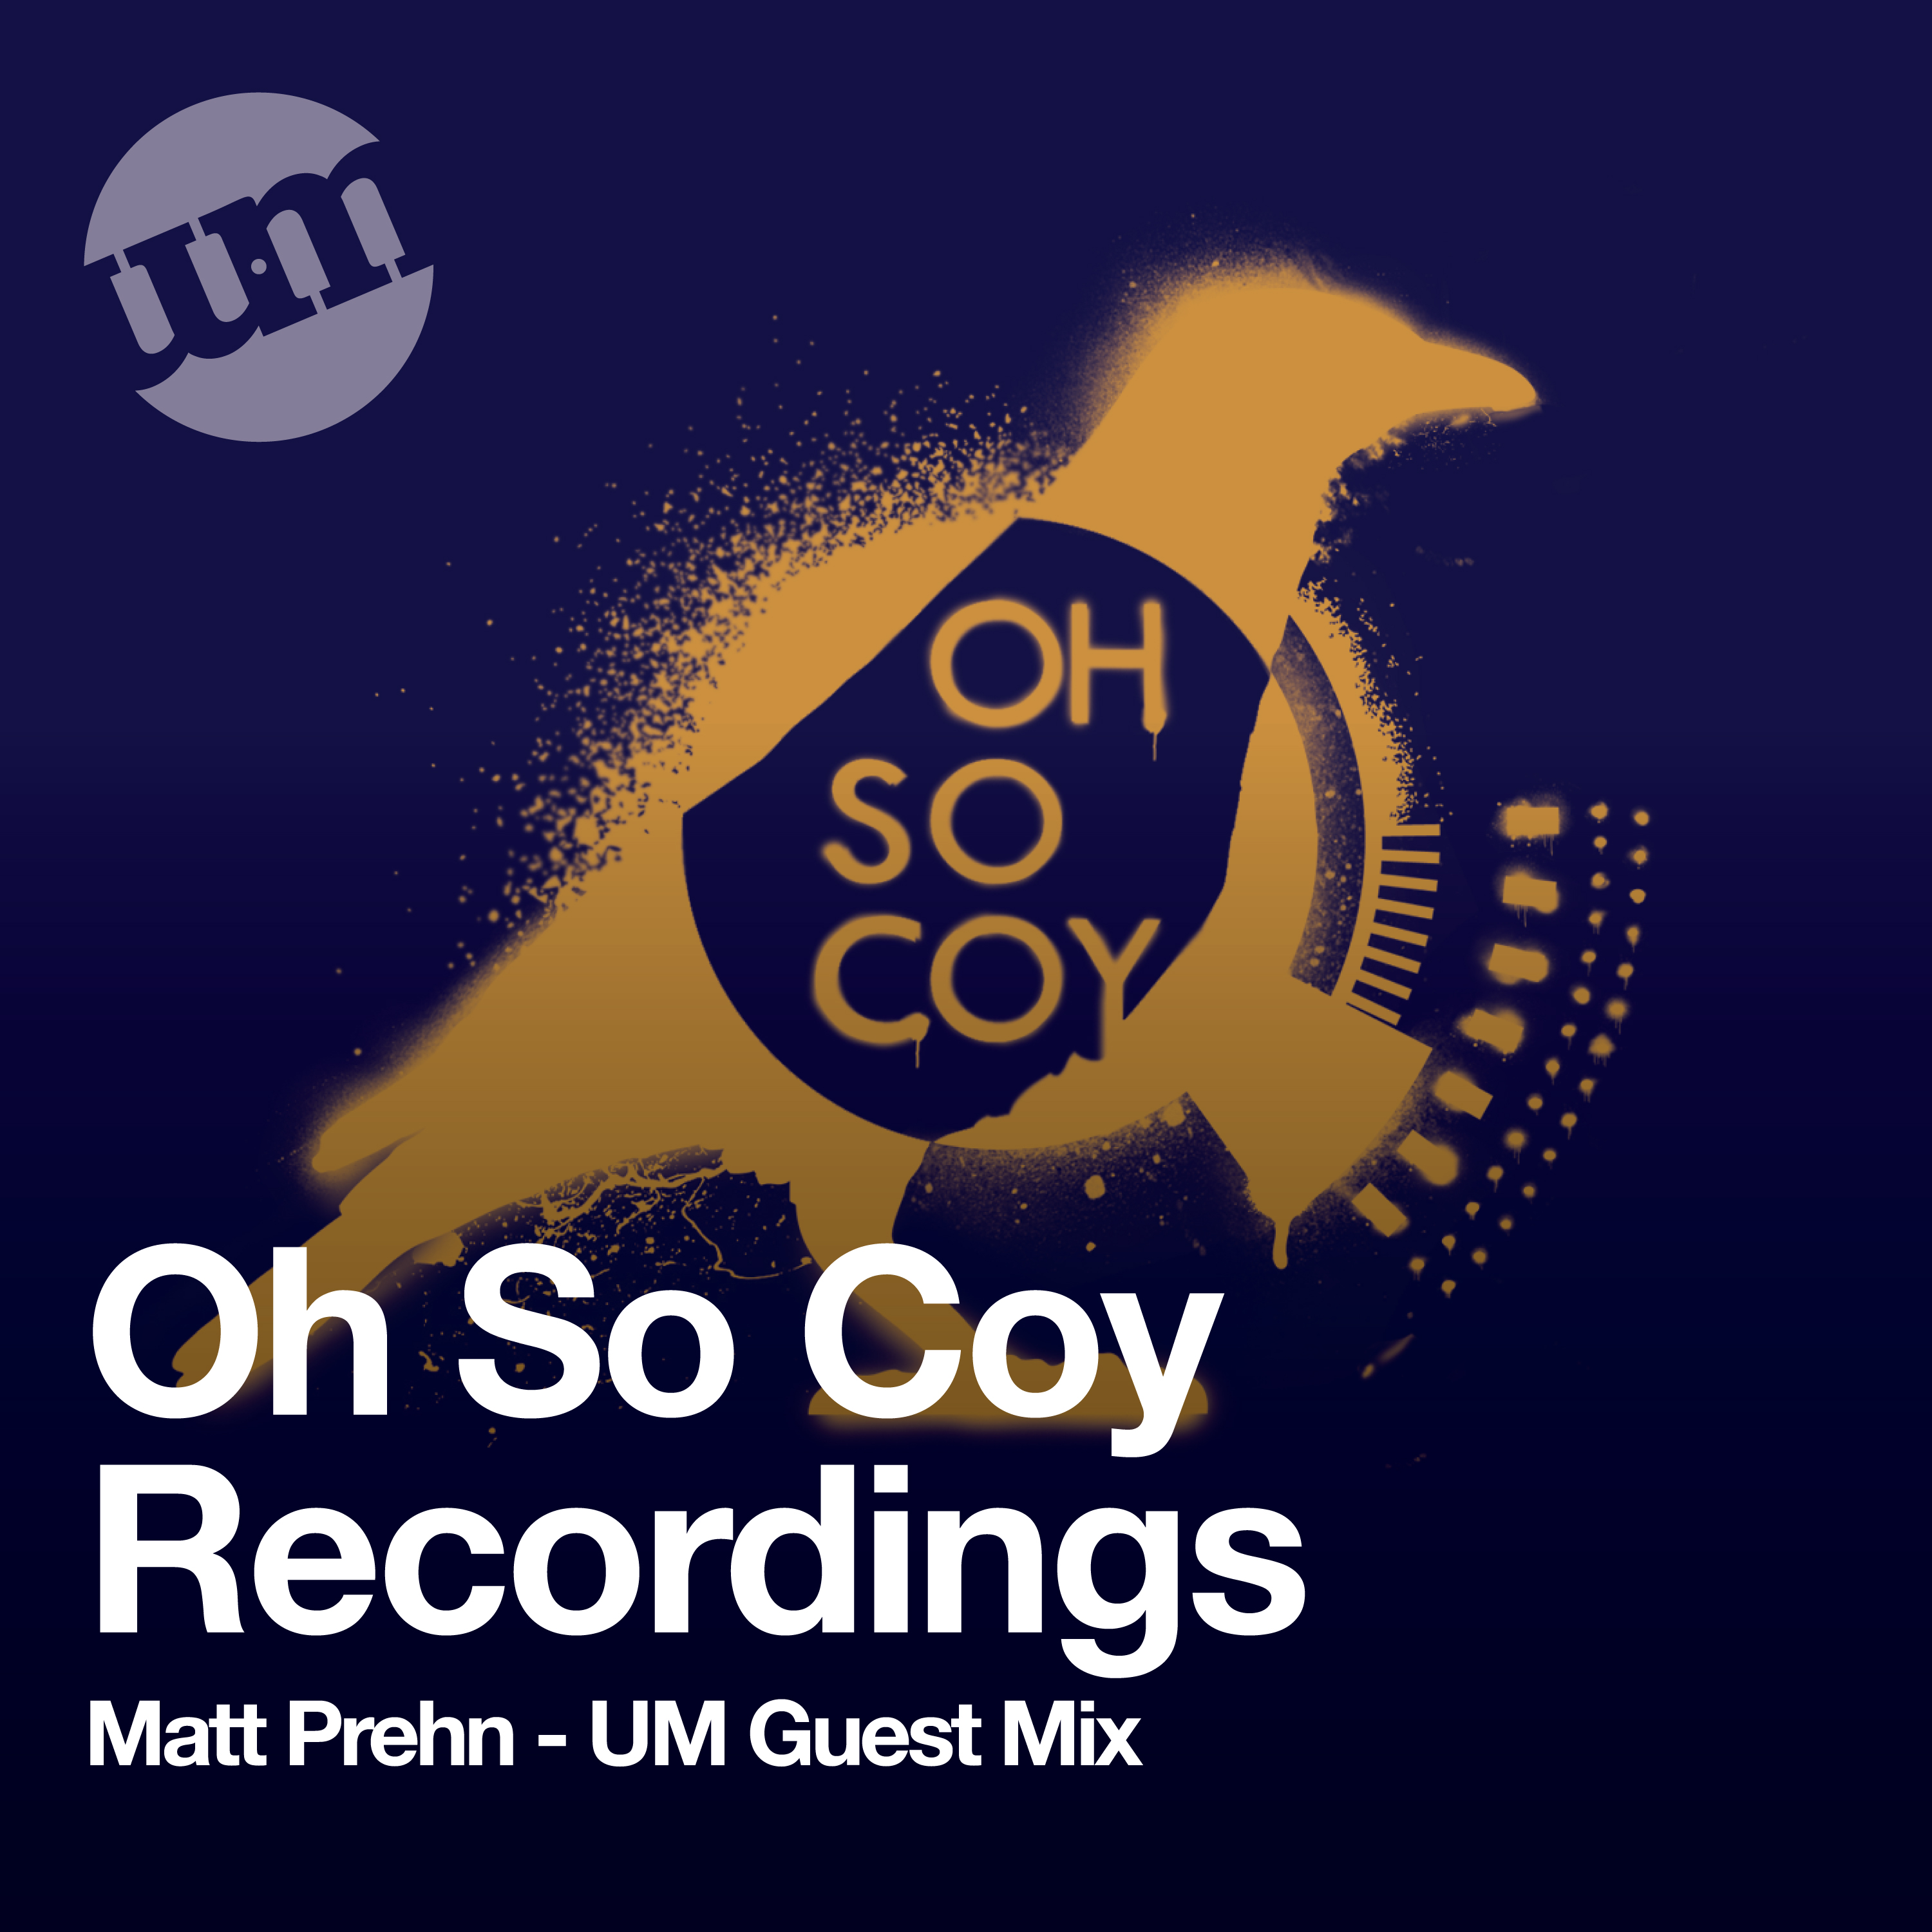 Oh So Coy Recordings - Matt Prehn Guest Mix (09.09.20)